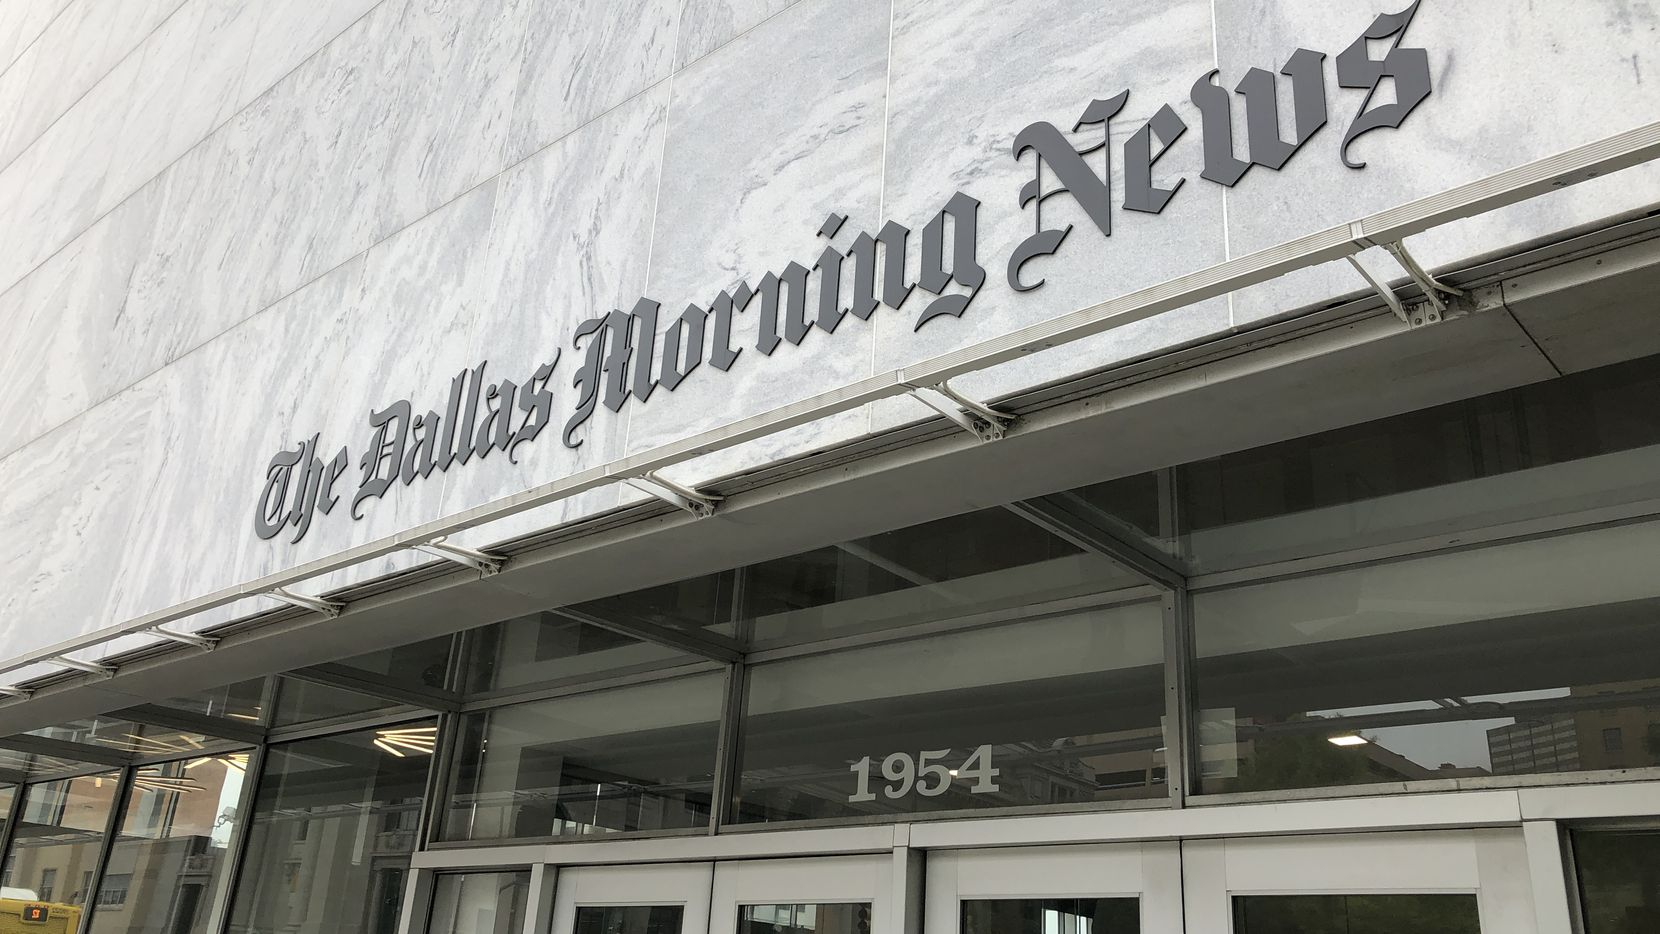 The Dallas Morning News is among a growing number of legacy newspapers to undergo unionization drives this year, as the COVID-19 pandemic caused thousands of job cuts in newsrooms across the country.